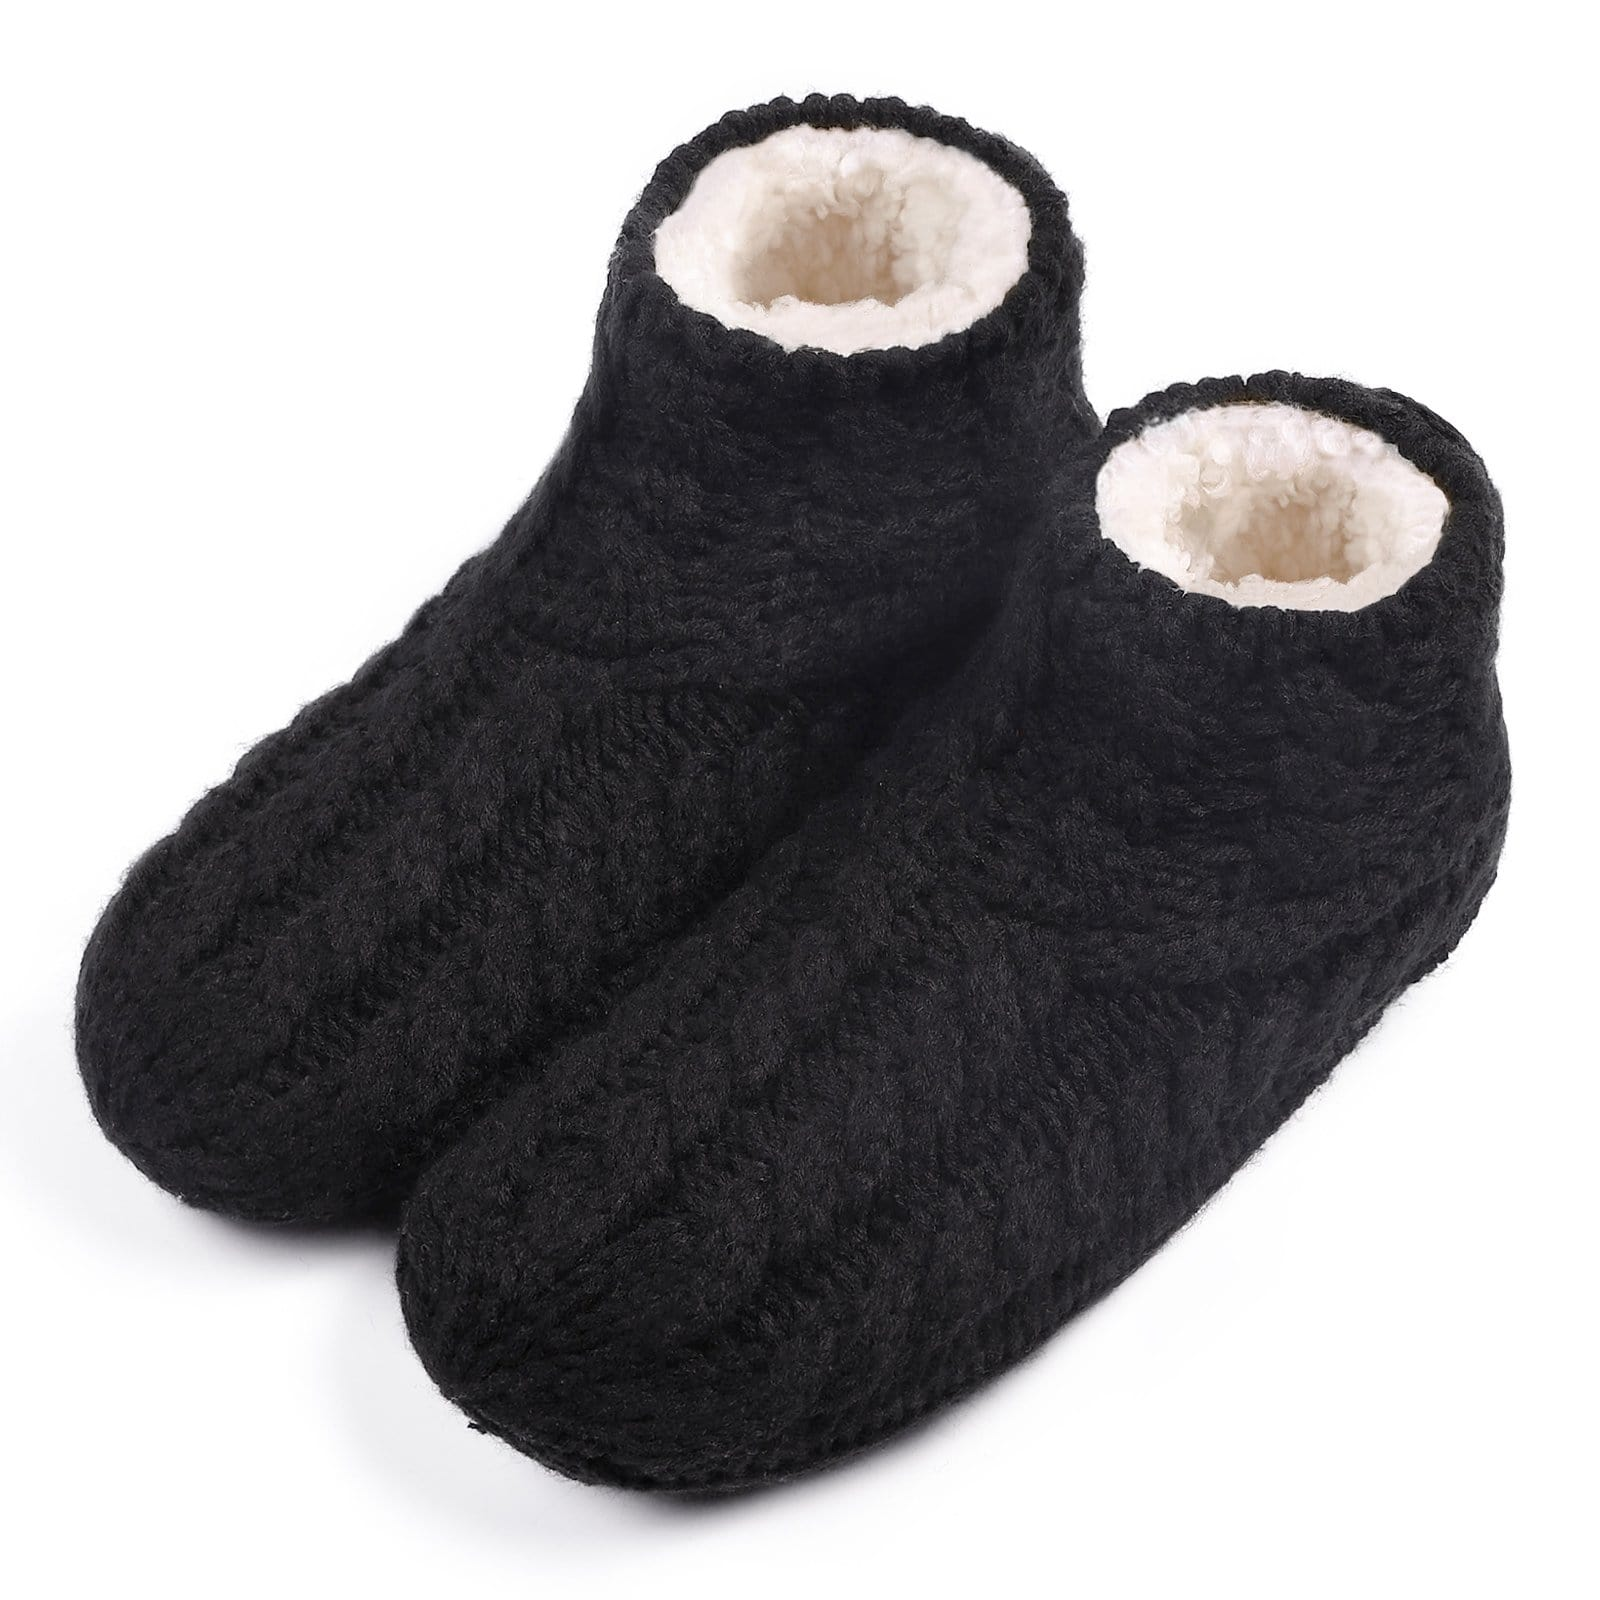 Ladies' Warm Cable Knit Non Slip Winter Slipper Socks with Fluffy Fleece Lining